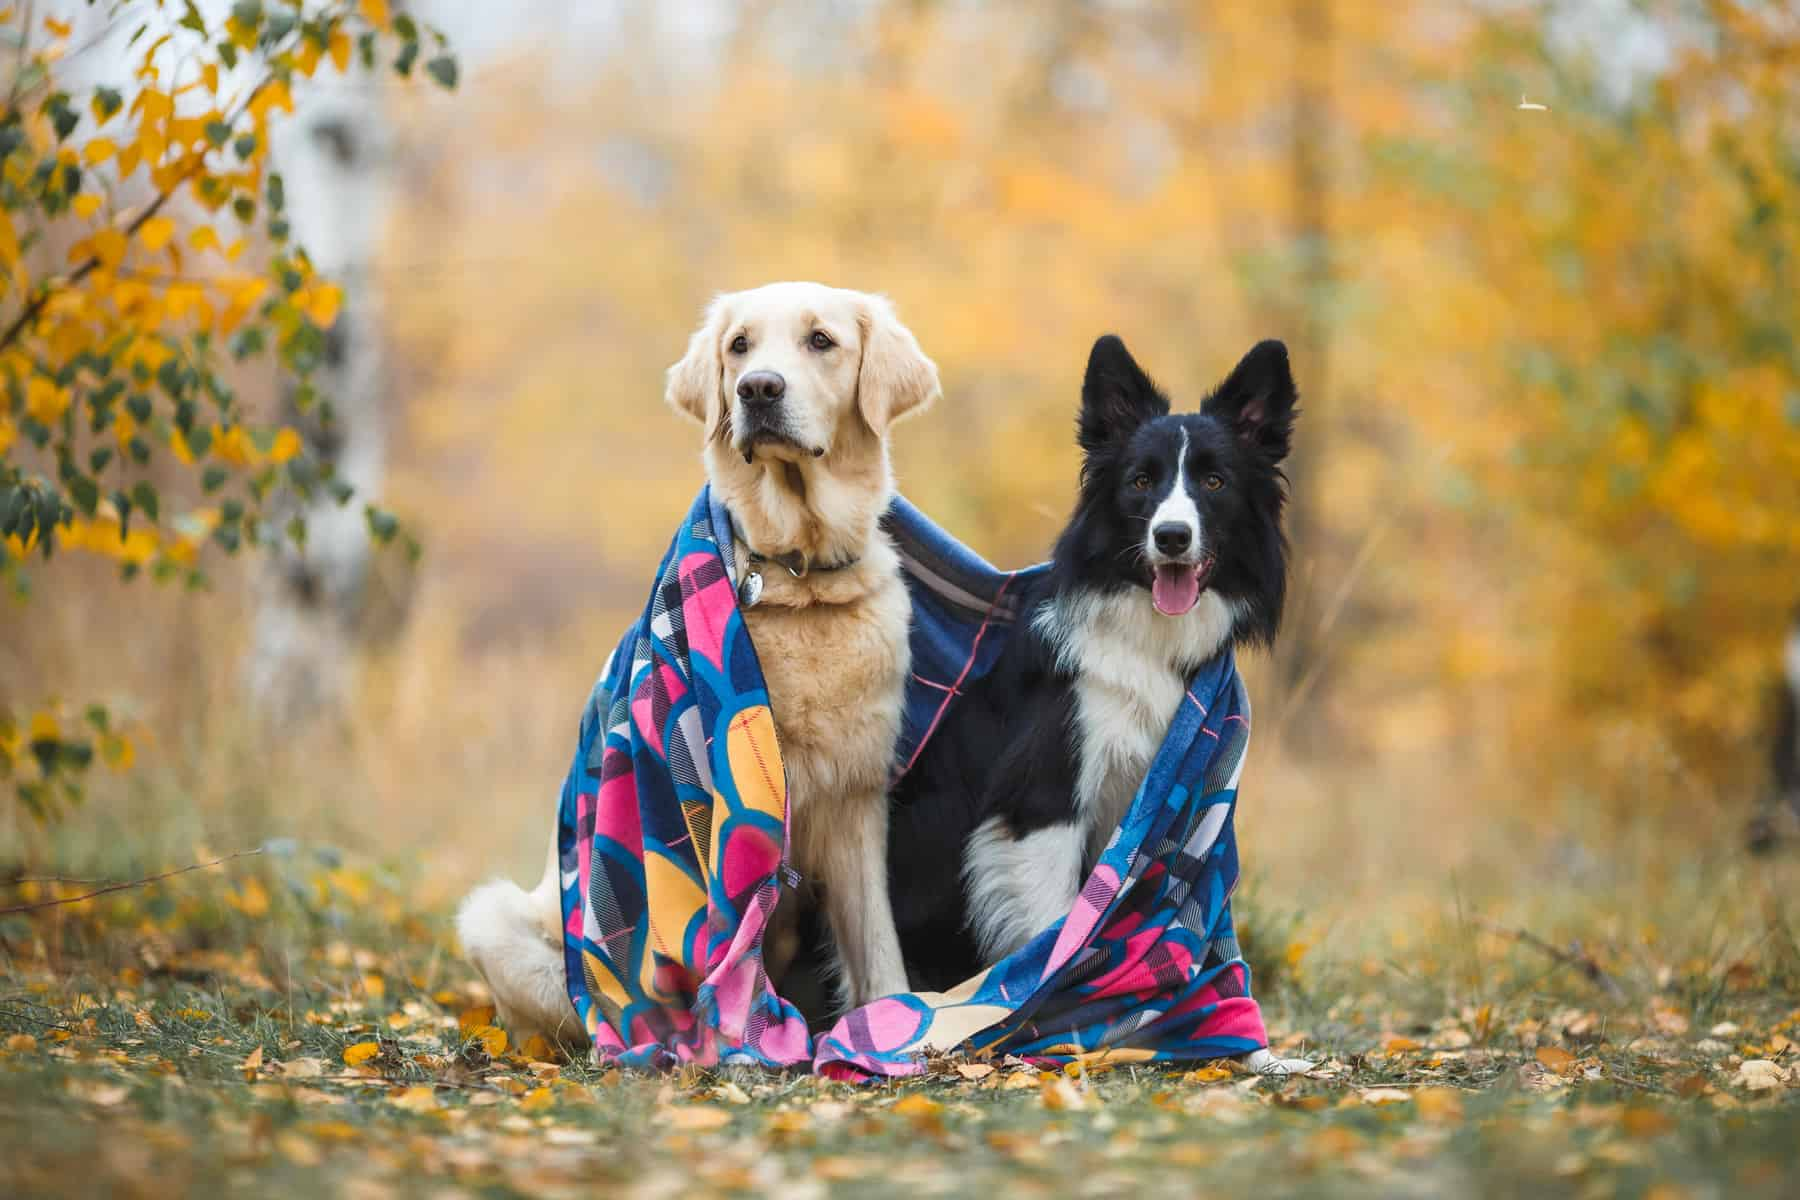 A Golden Retriever and a Border Collie wrapped in a blanket together